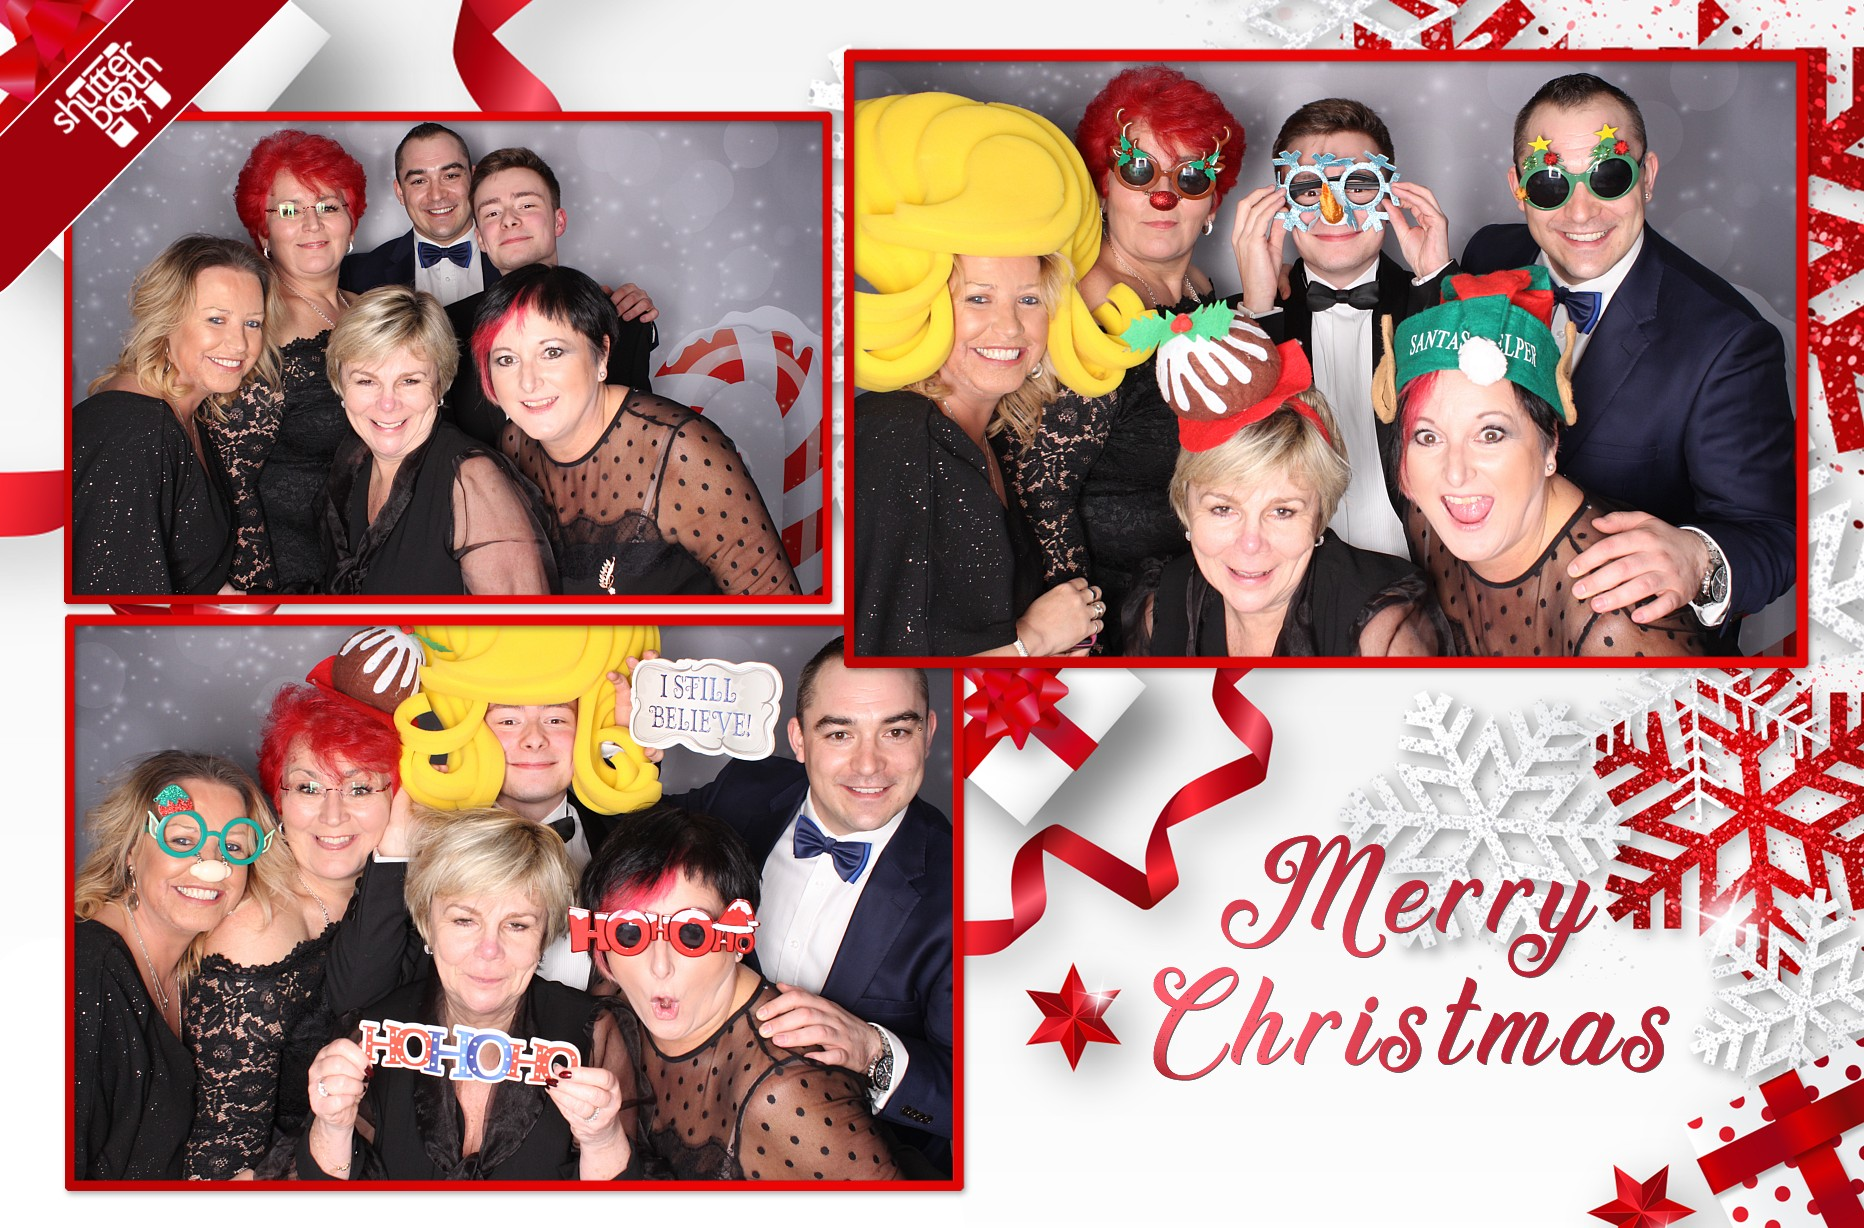 Hilton Christmas Parties | View more photos from the event at gallery.shutterbooth.co.uk/u/Shutterbooth/Hilton-Christmas-Parties-1